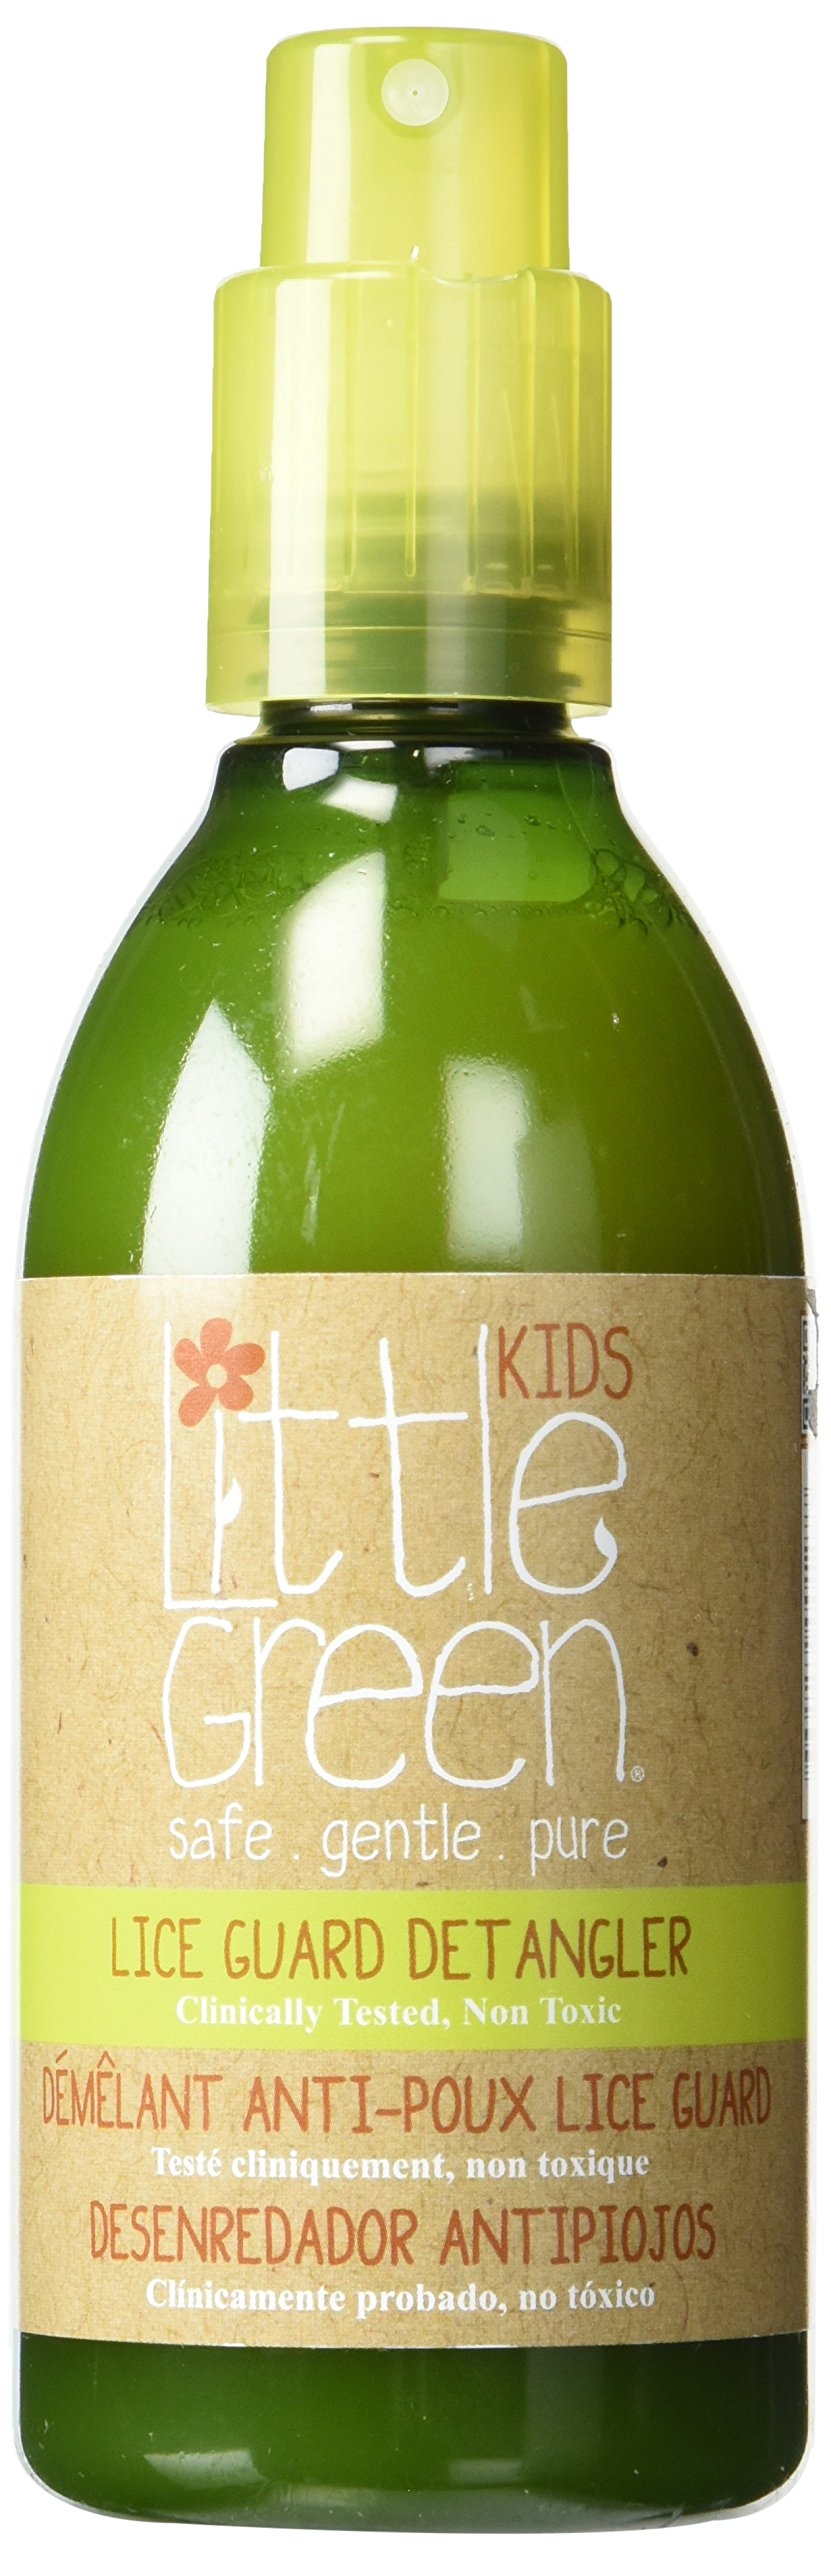 Little Green Lice Guard Detangler Spray - Conditioning Lice Treatment - Safe and Non-Toxic for Kids - Natural Lice Repellant - Remove Tangles from Hair - Repels Lice Naturally - Essential Oil Blend by Little Green